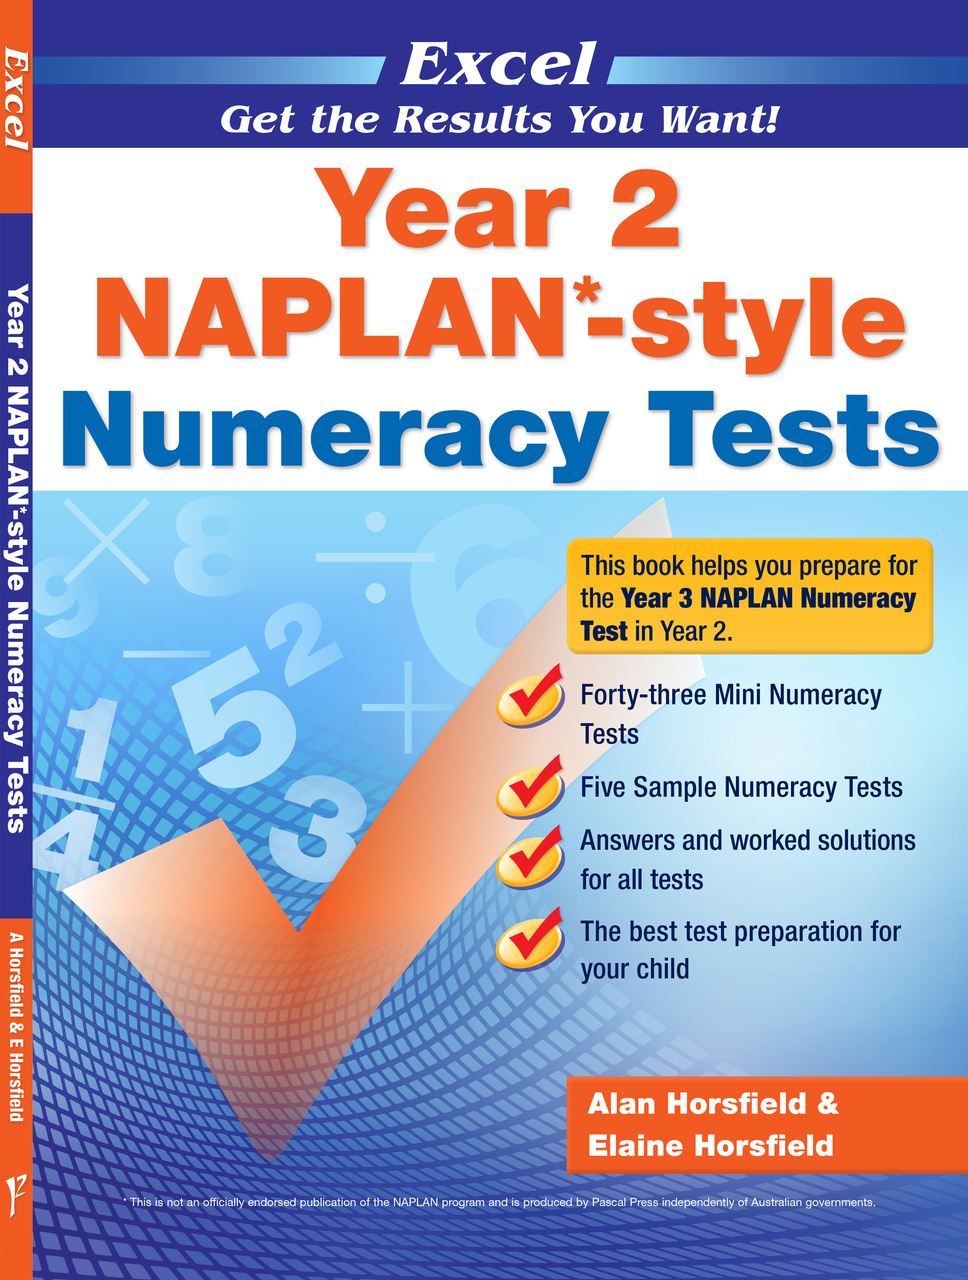 EXCEL - YEAR 2 NAPLAN*-STYLE NUMERACY TESTS